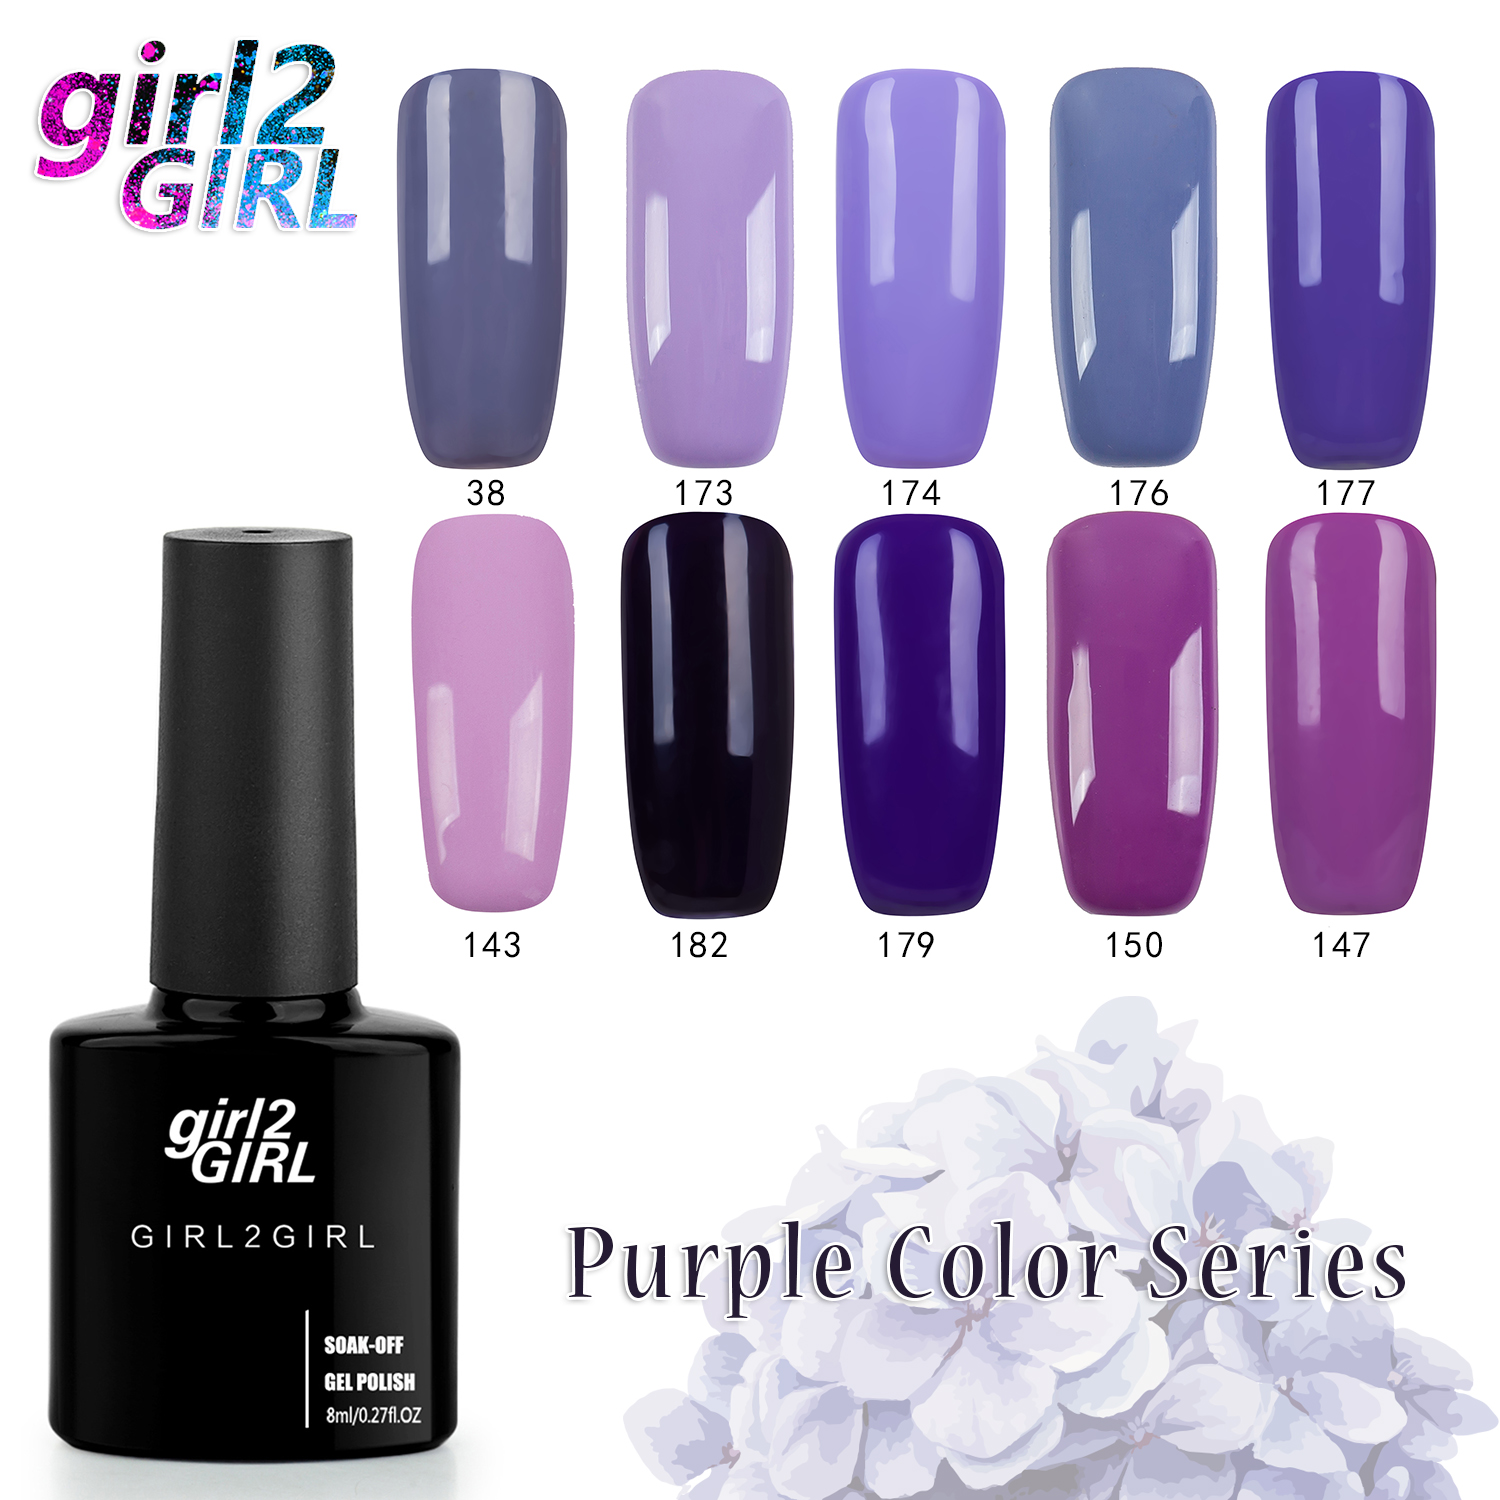 girl2GIRL Gel varnish NAIL GEL UV POLISH 280 Colors High Quality Long-lasting 8 ML Soak-off   PURPLE set